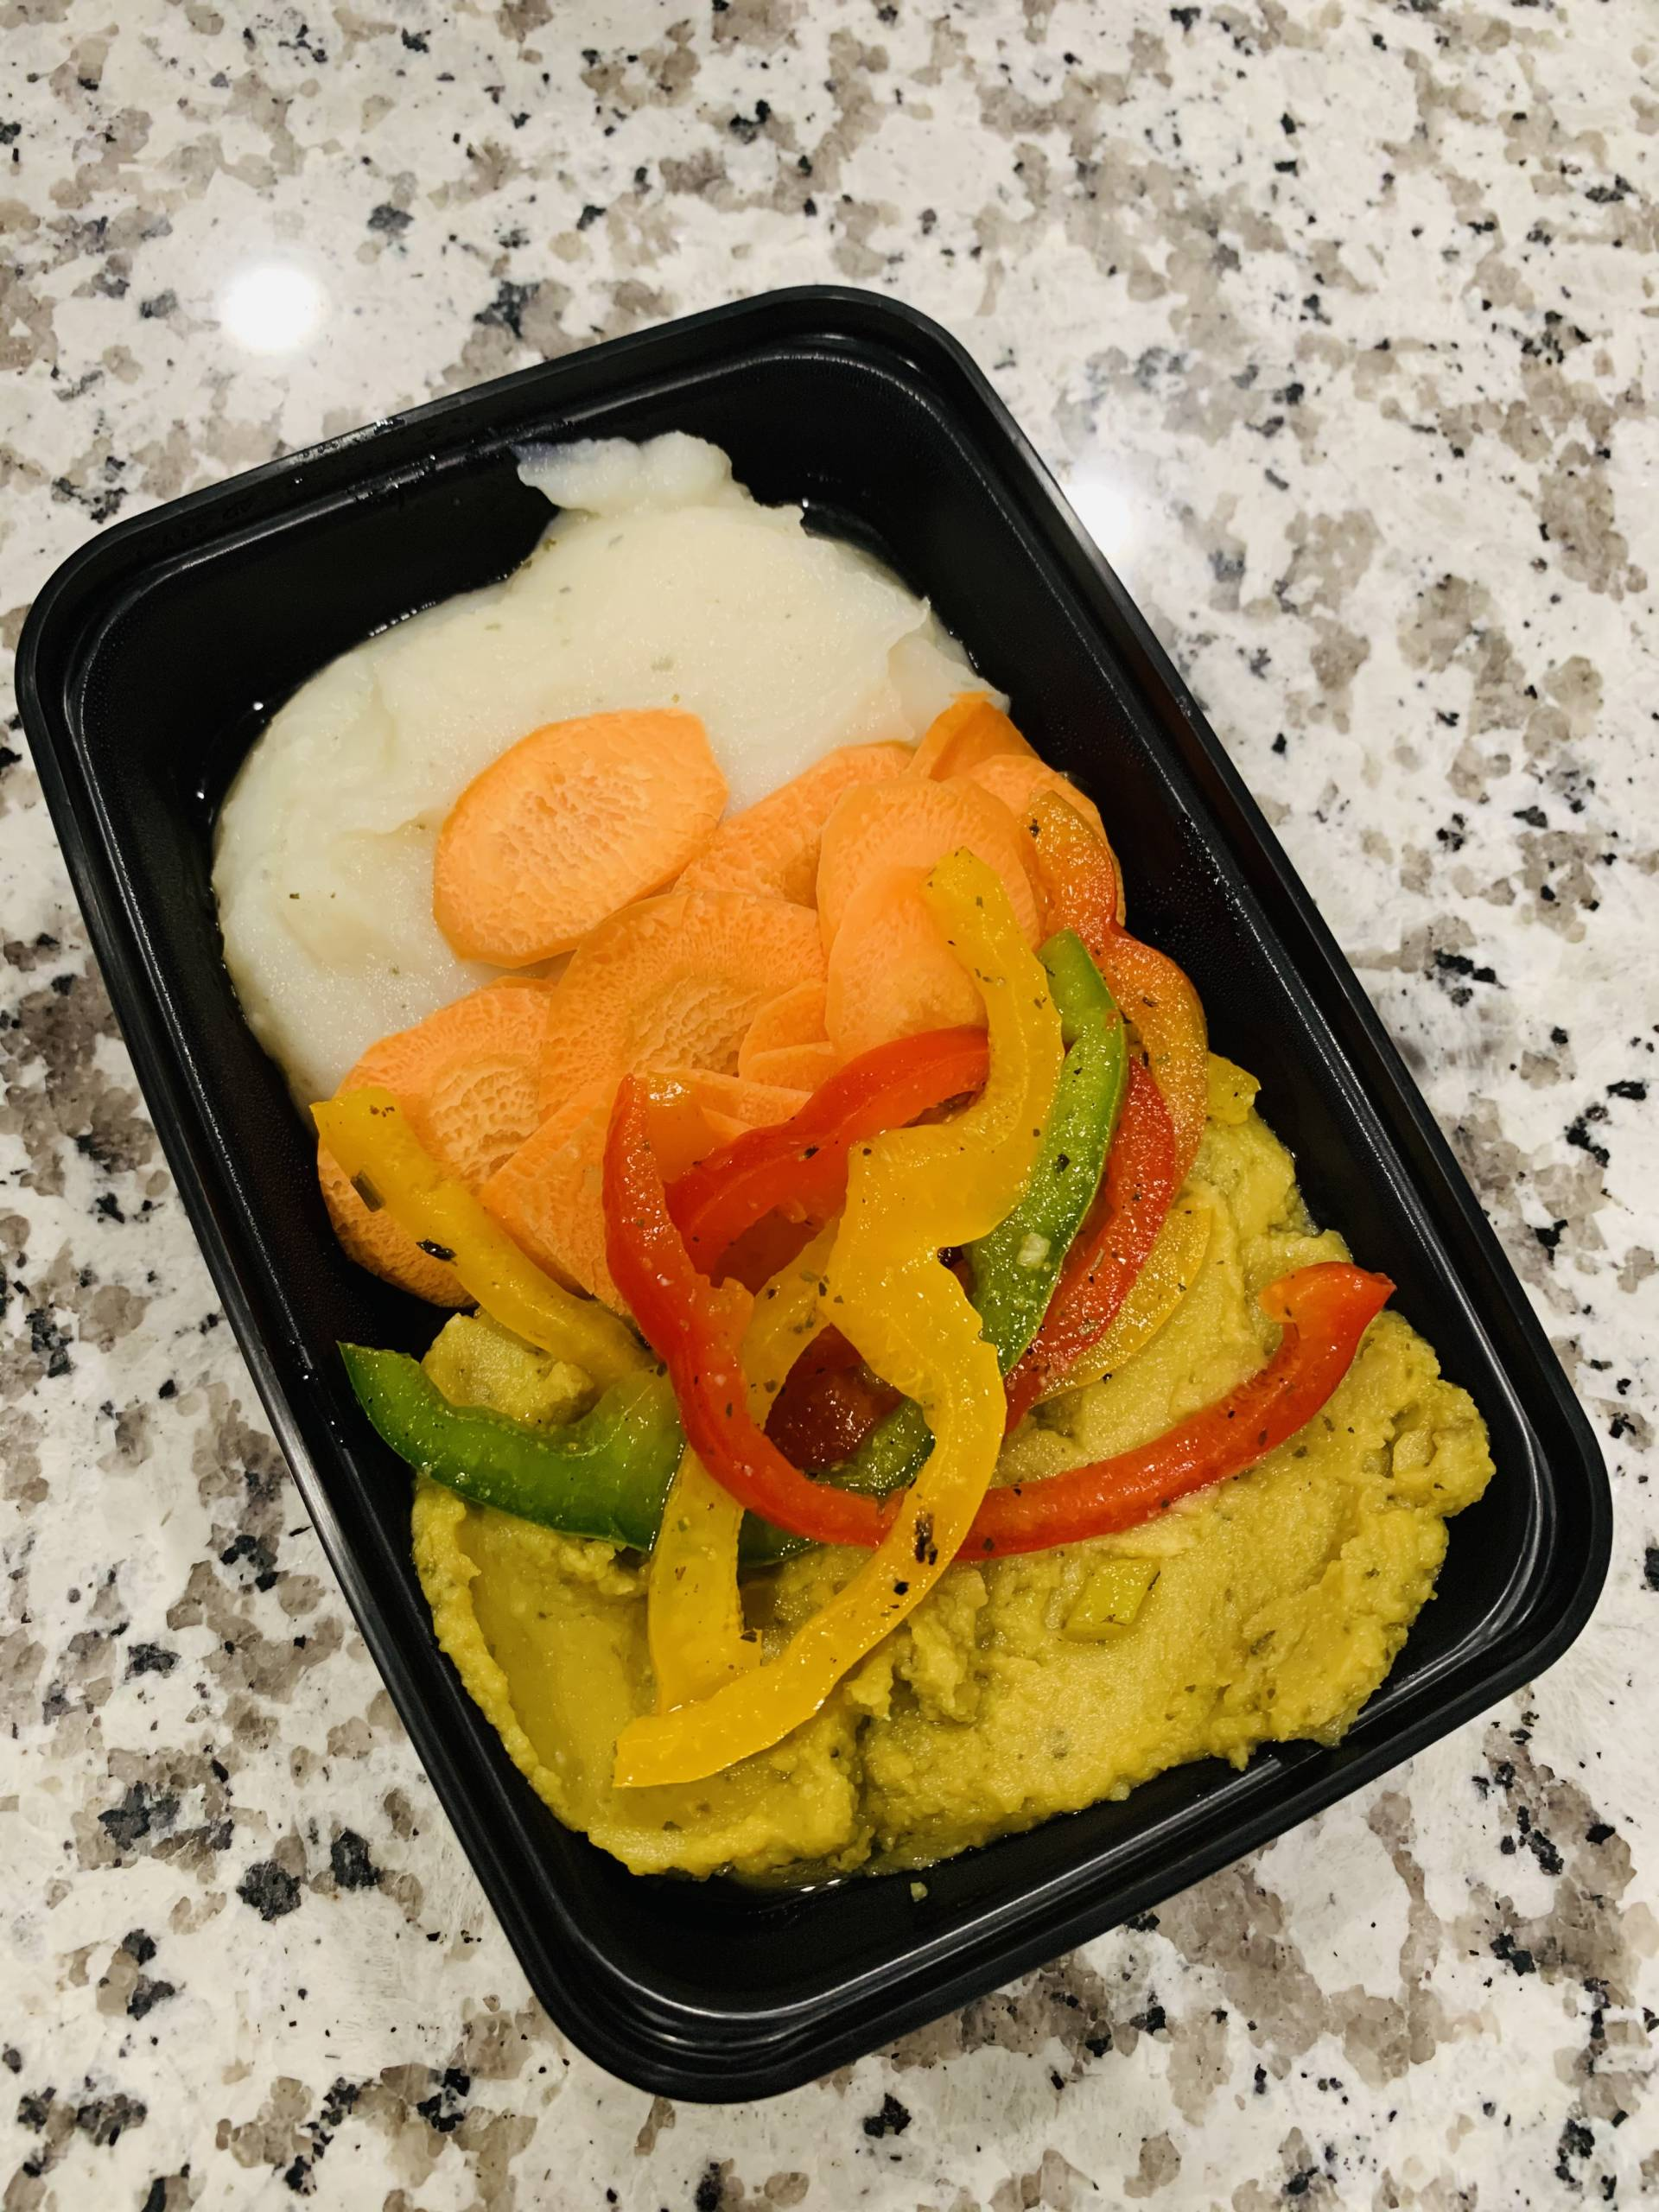 Chicharo, Mashed Potatoes, Carrots and Peppers